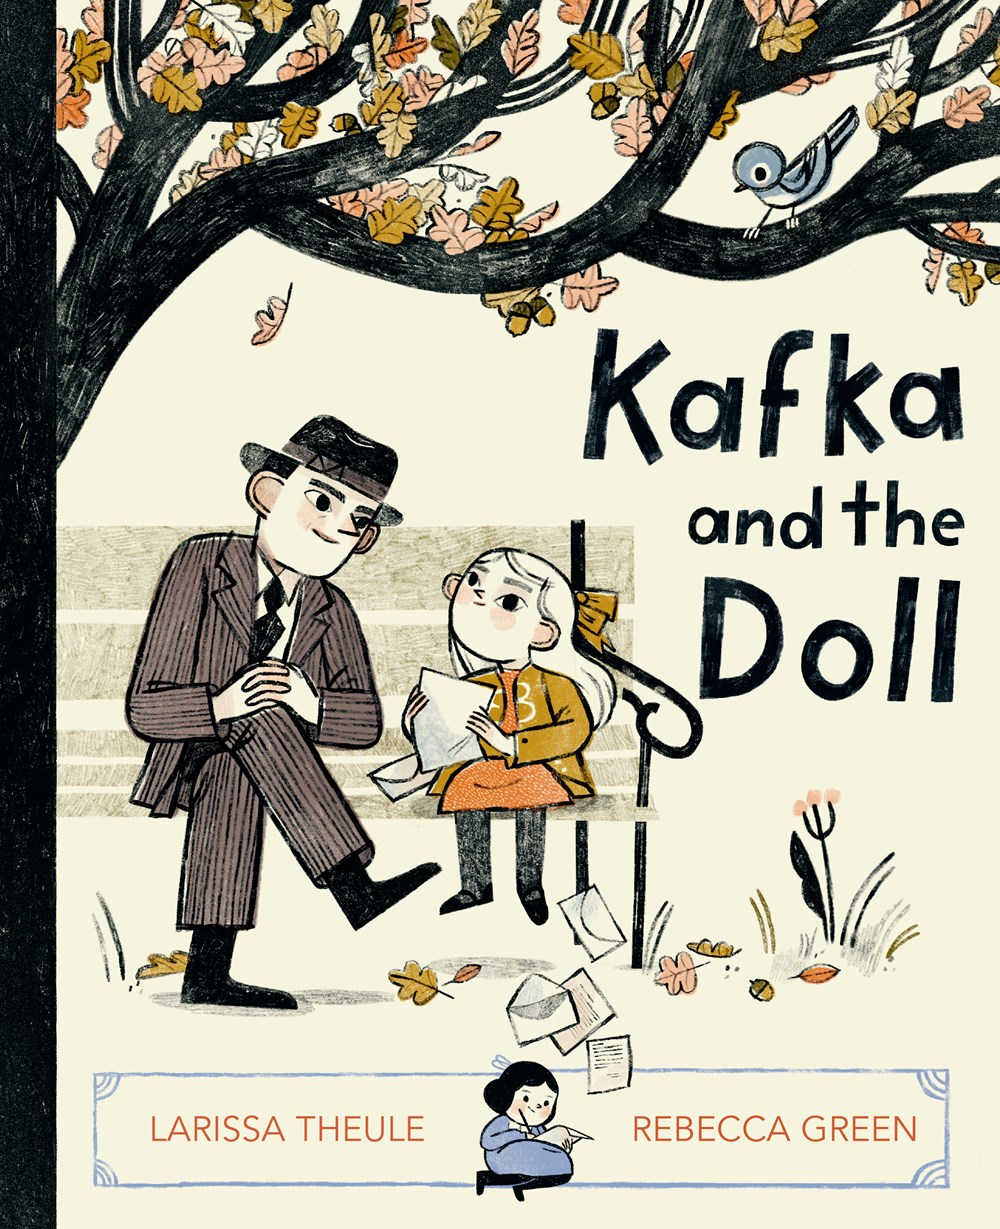 Kafka and the Doll by Larissa Theule, Rebecca Green (Illus.)